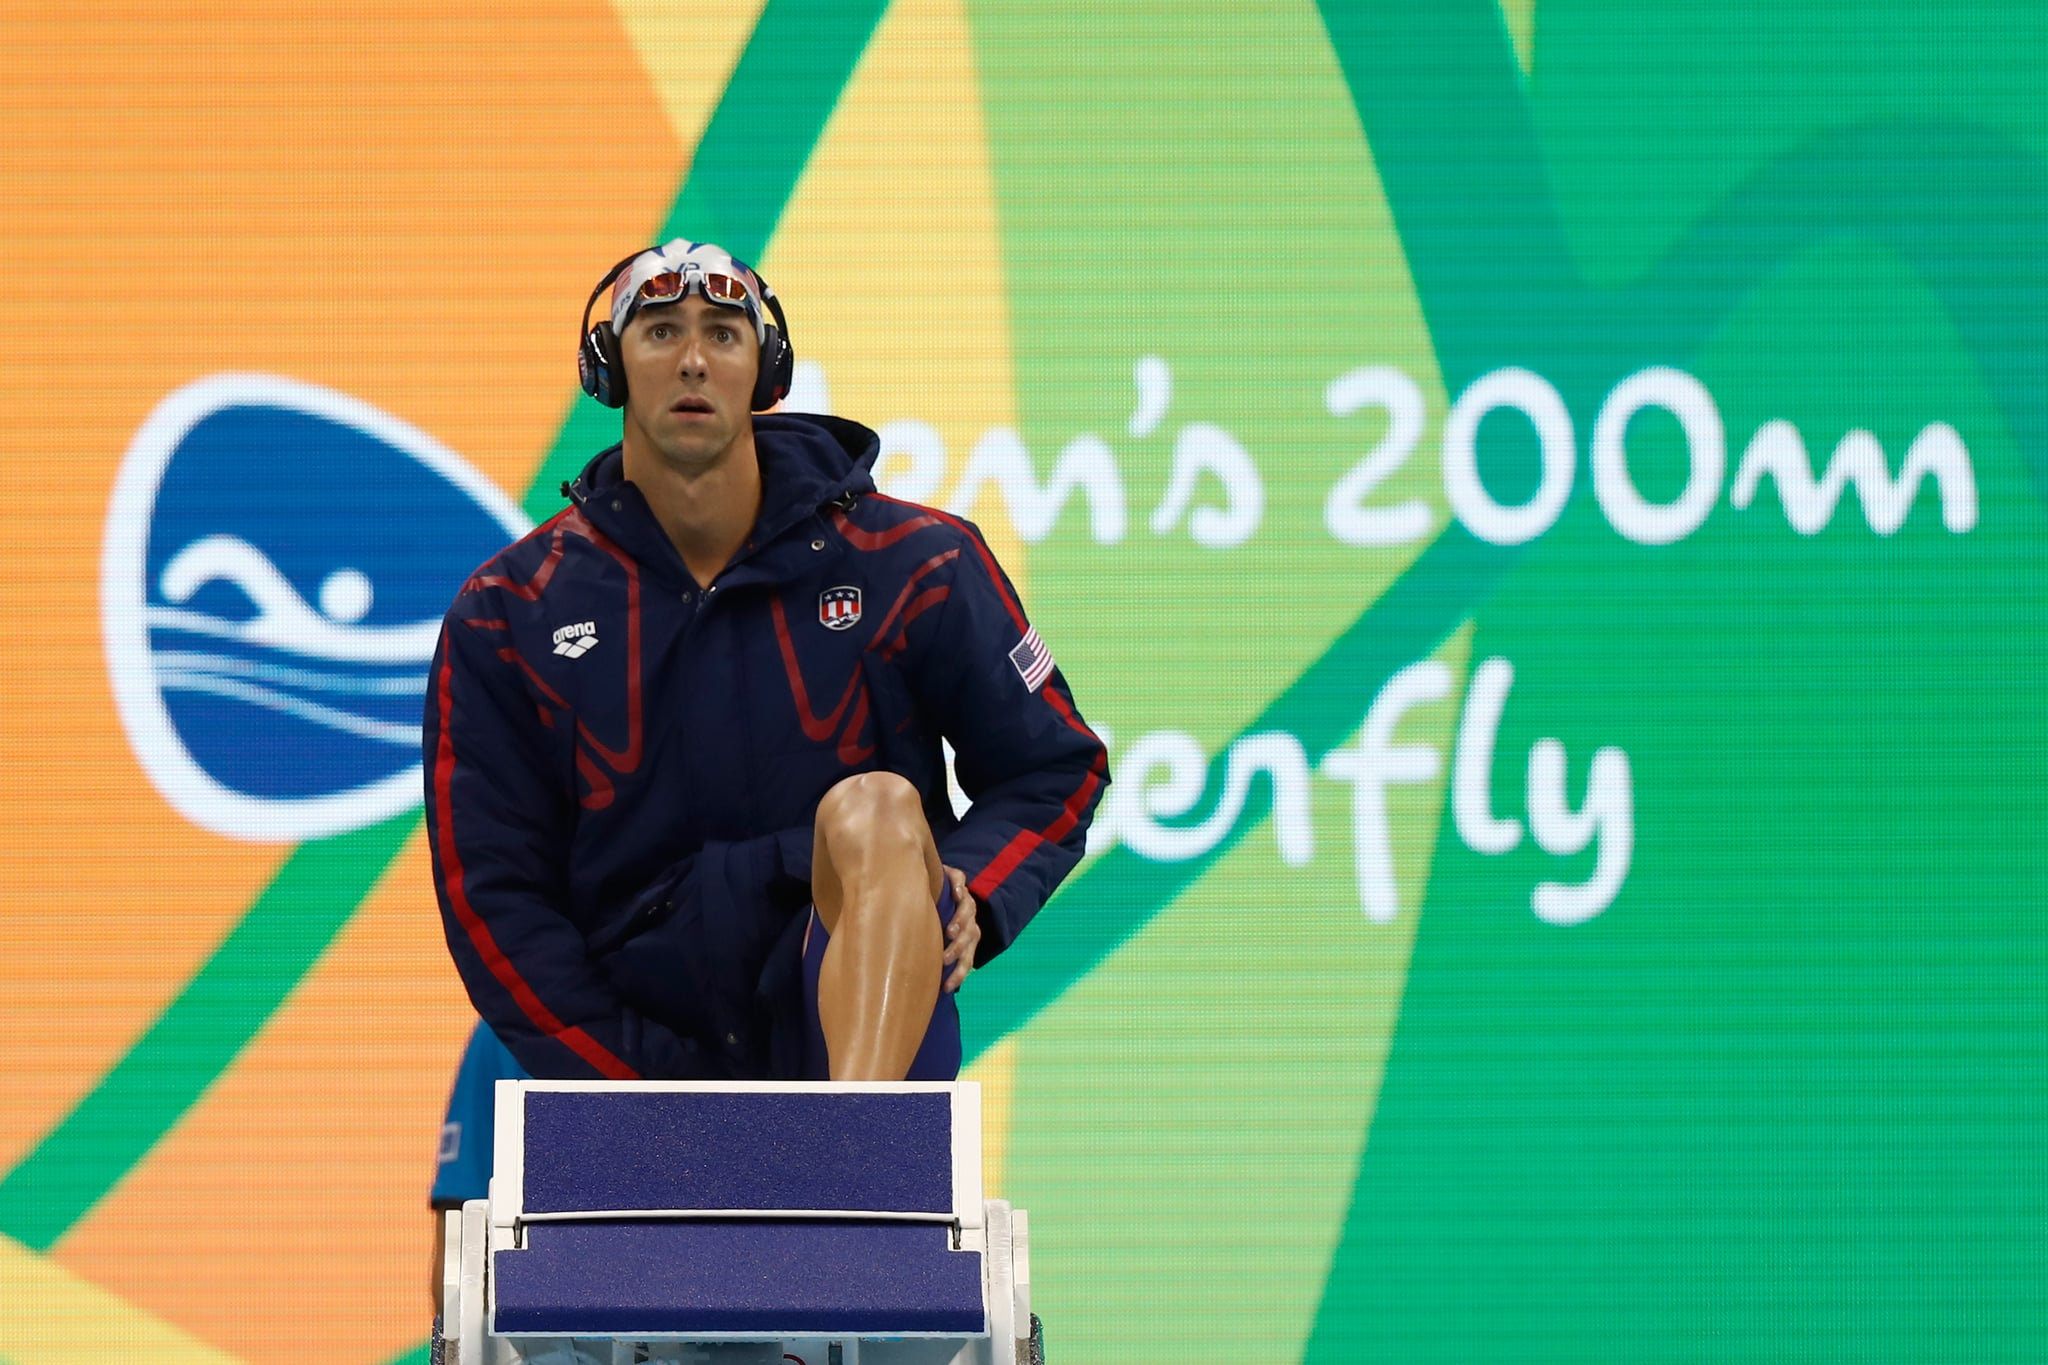 RIO DE JANEIRO, BRAZIL - AUGUST 08:  Michael Phelps of the United States prepares for his Men's 200m Butterfly heat on Day 3 of the Rio 2016 Olympic Games at the Olympic Aquatics Stadium on August 8, 2016 in Rio de Janeiro, Brazil.  (Photo by Clive Rose/Getty Images)